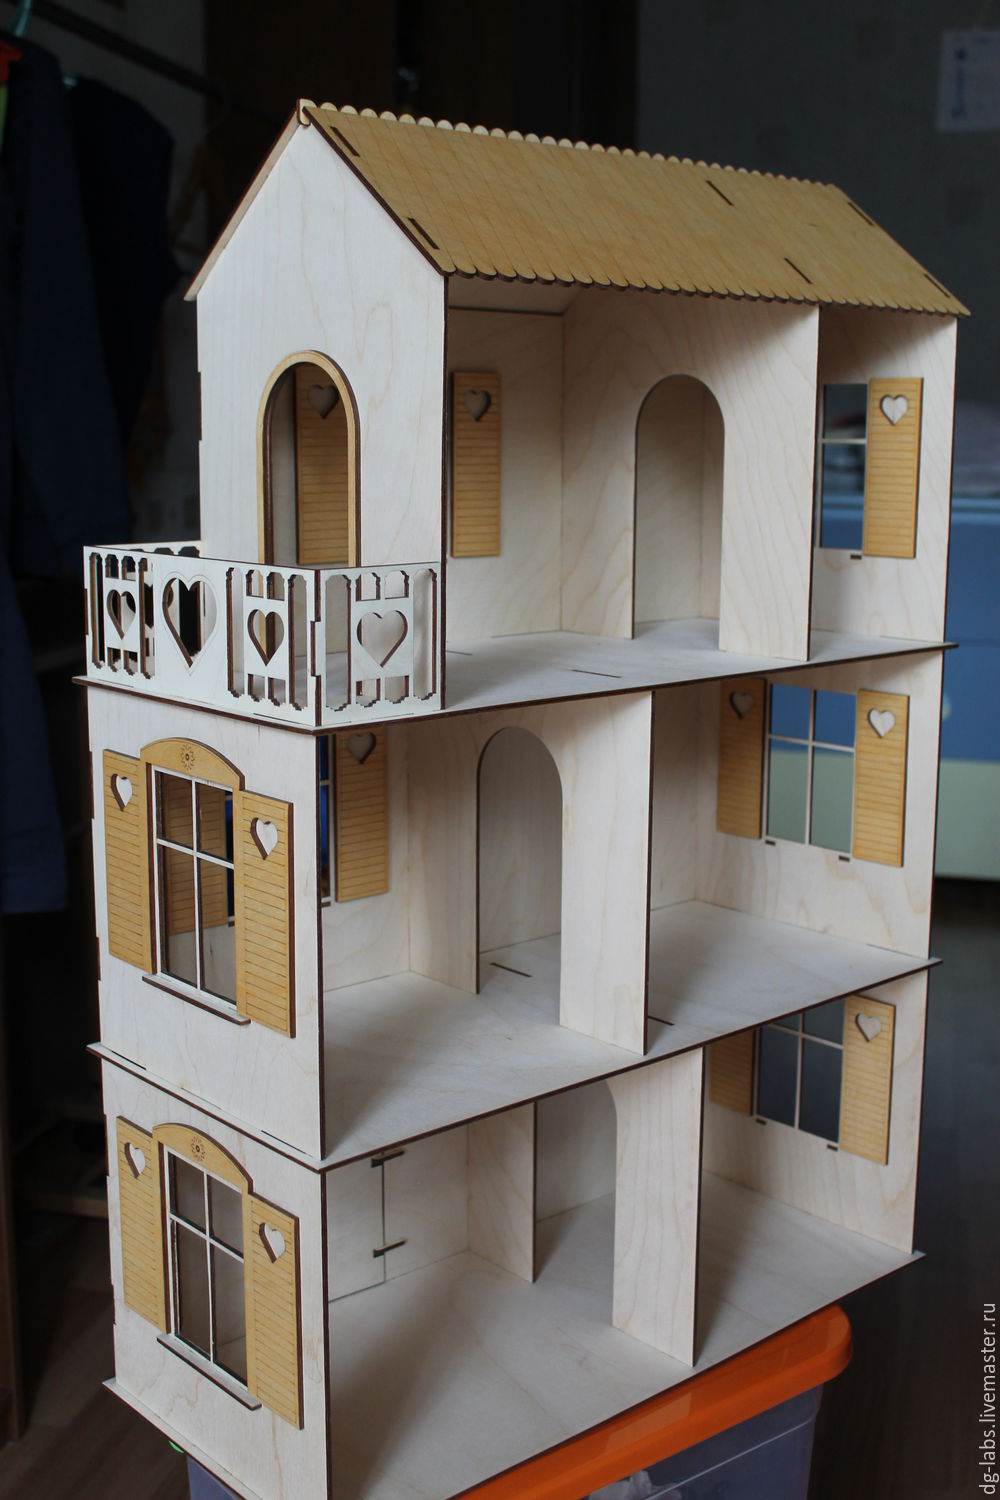 Dollhouse 3 Floors Shop Online On Livemaster With Shipping